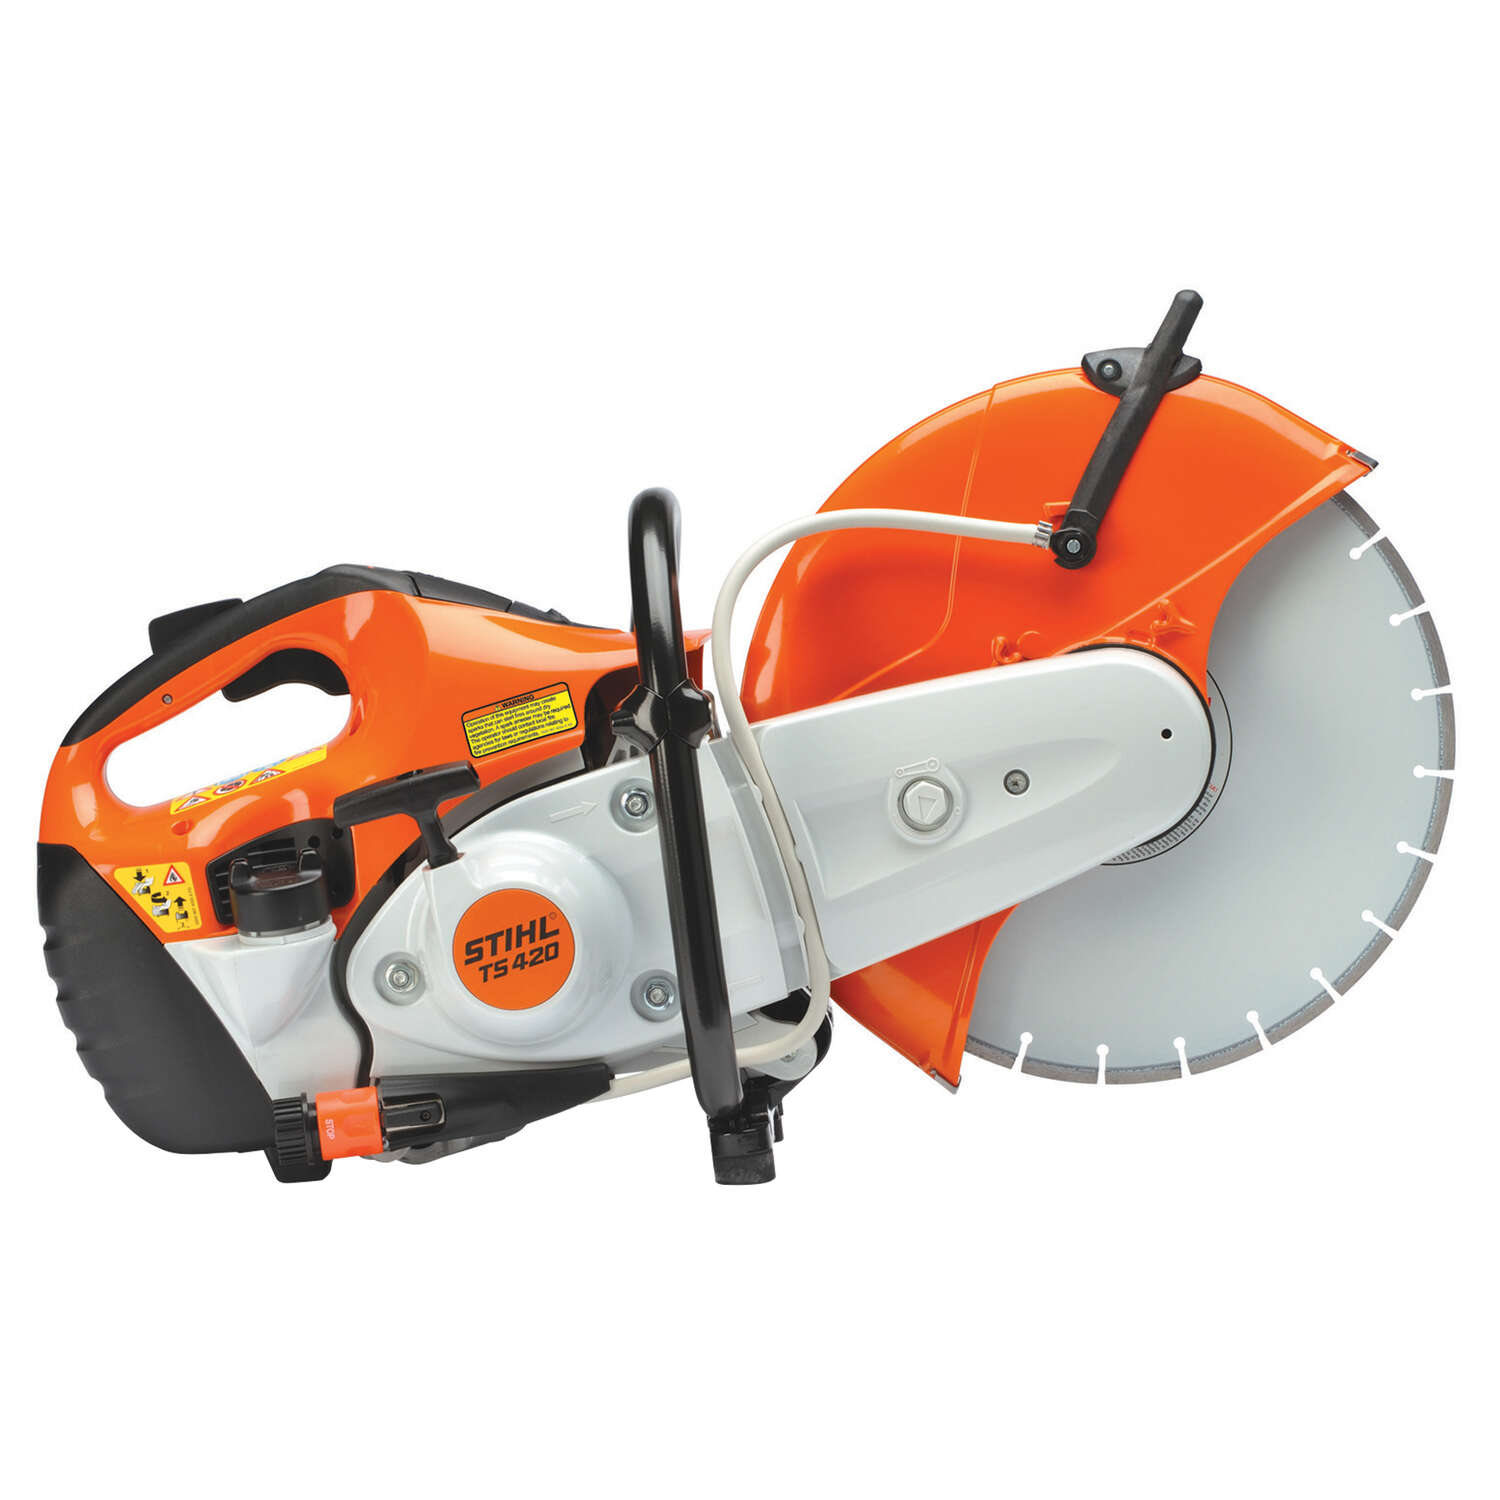 STIHL  TS 420 Cutquik  14 in. Corded  Cut-Off Saw  Bare Tool  5350 rpm